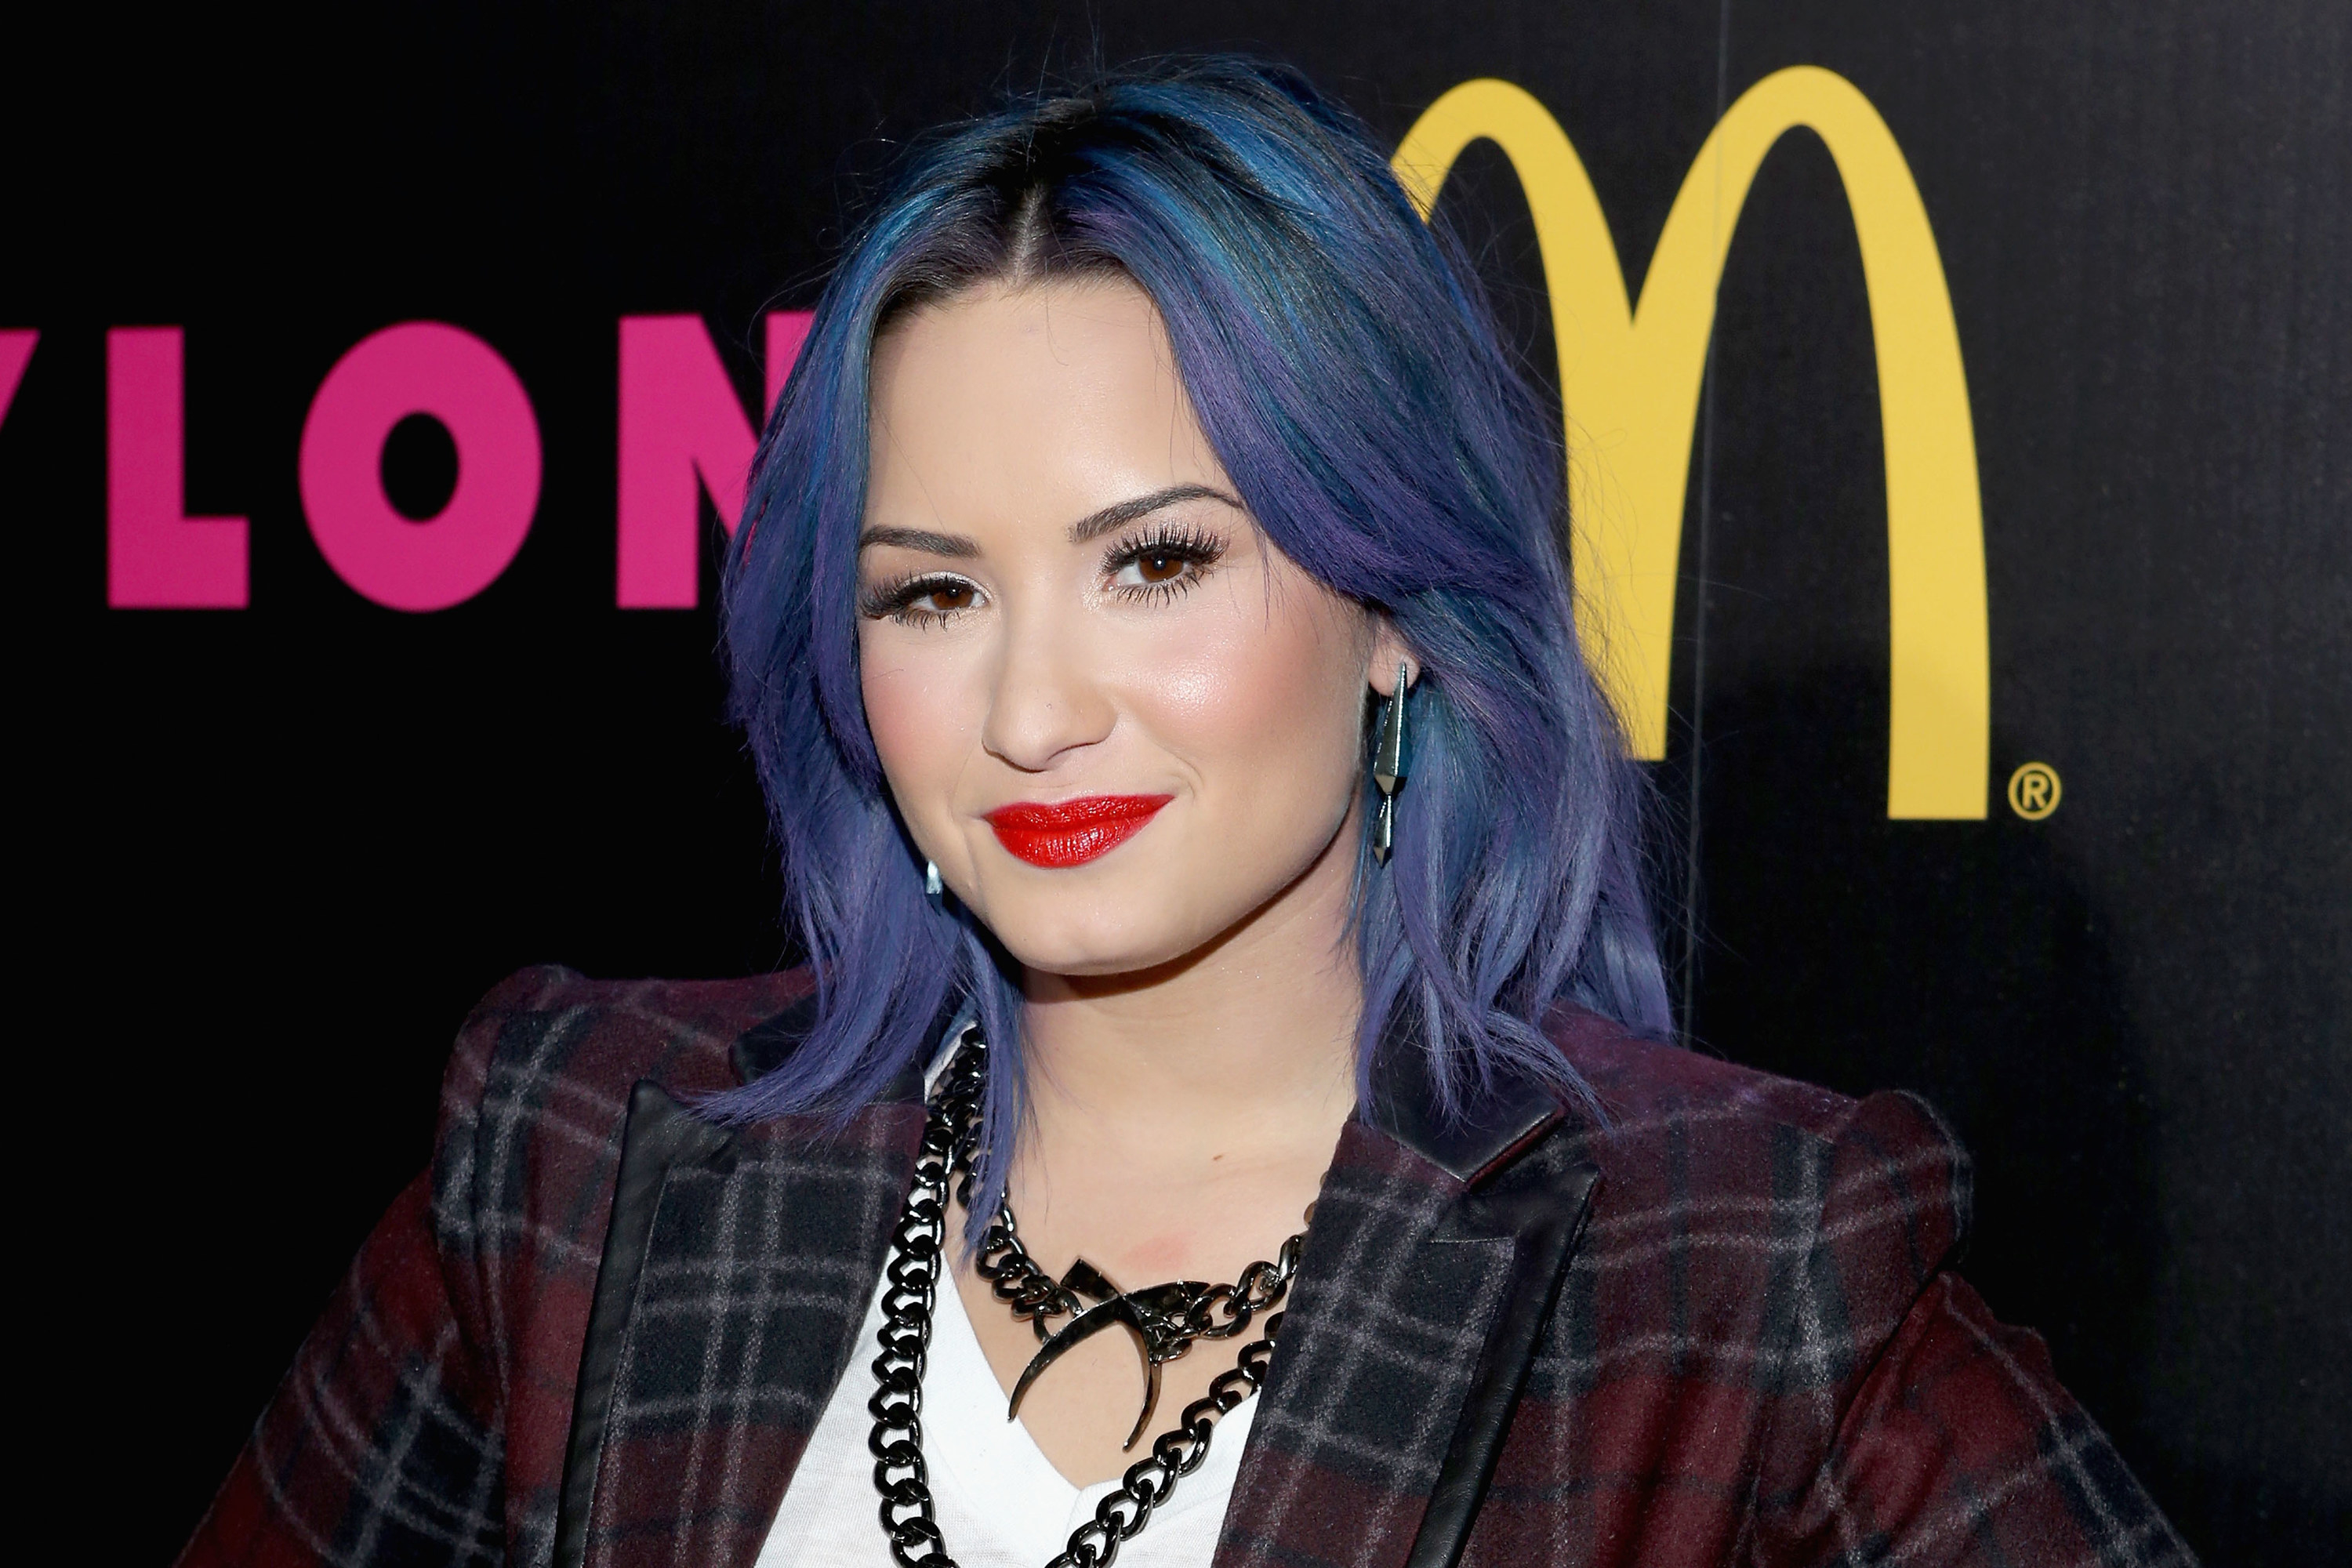 Demi smiles with shoulder-length blue hair with highlights in multiple shades of blue